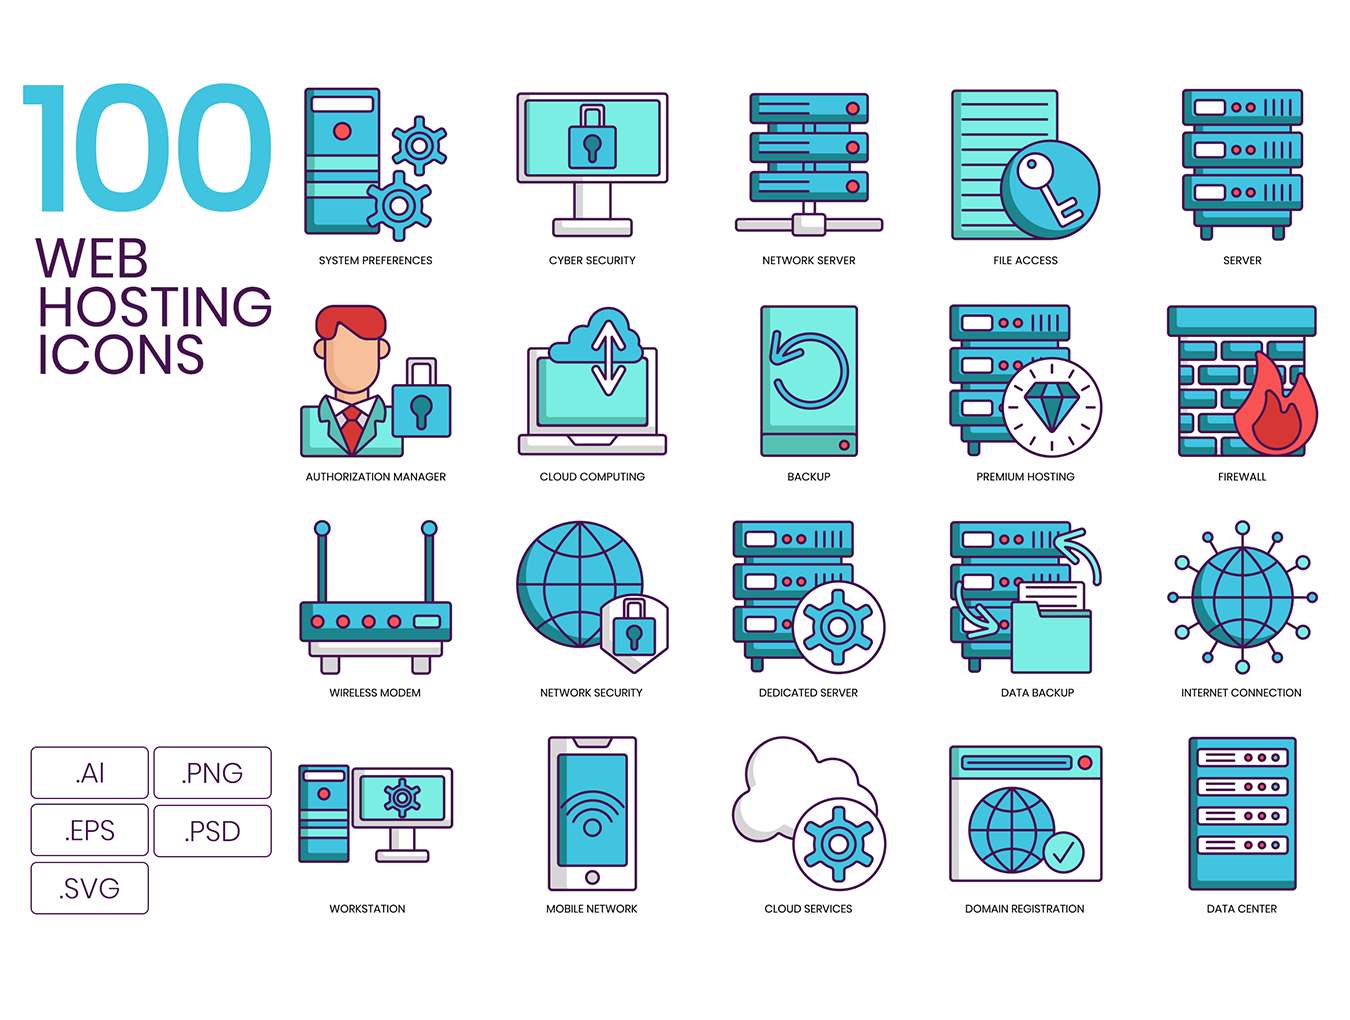 web_hosting_icons_ui8_detail_image_8_1540817410258.png